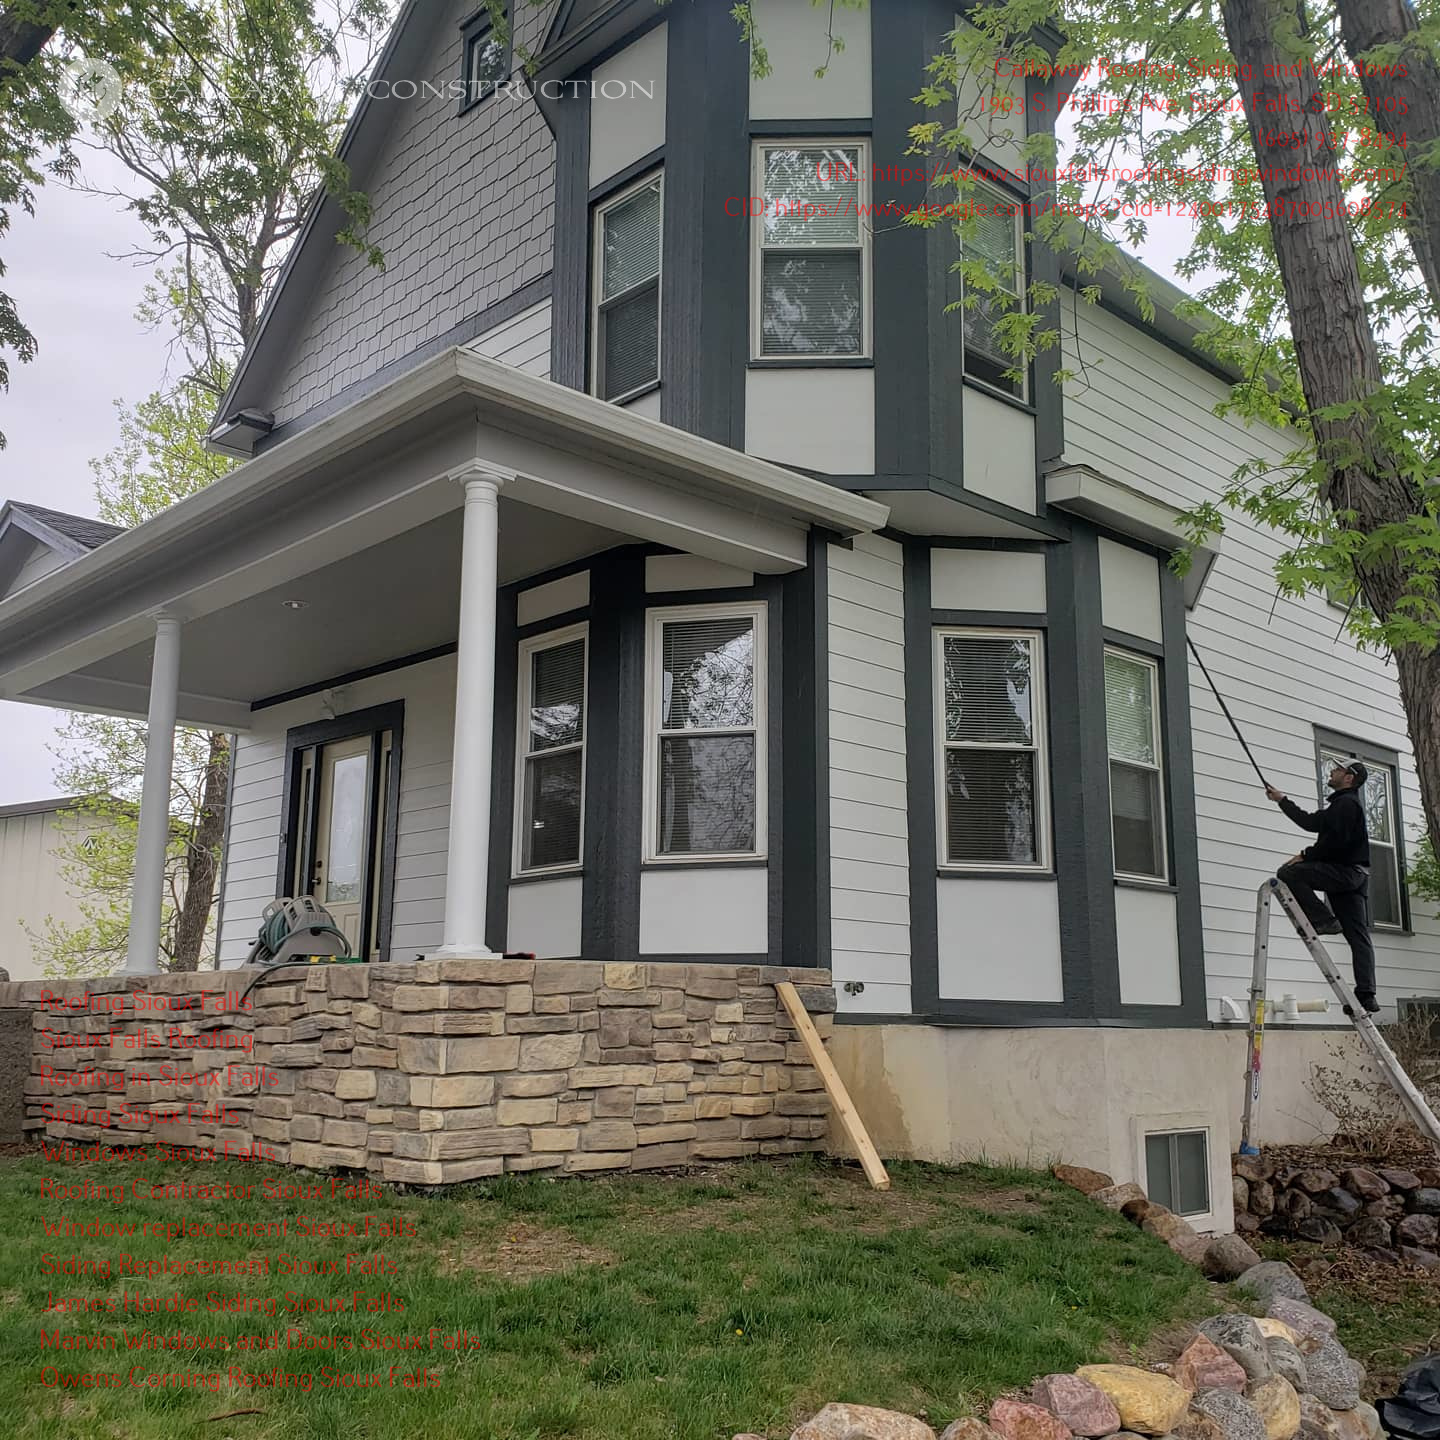 Callaway Roofing, Siding, and Windows Highlights the Process of Getting their Services 1